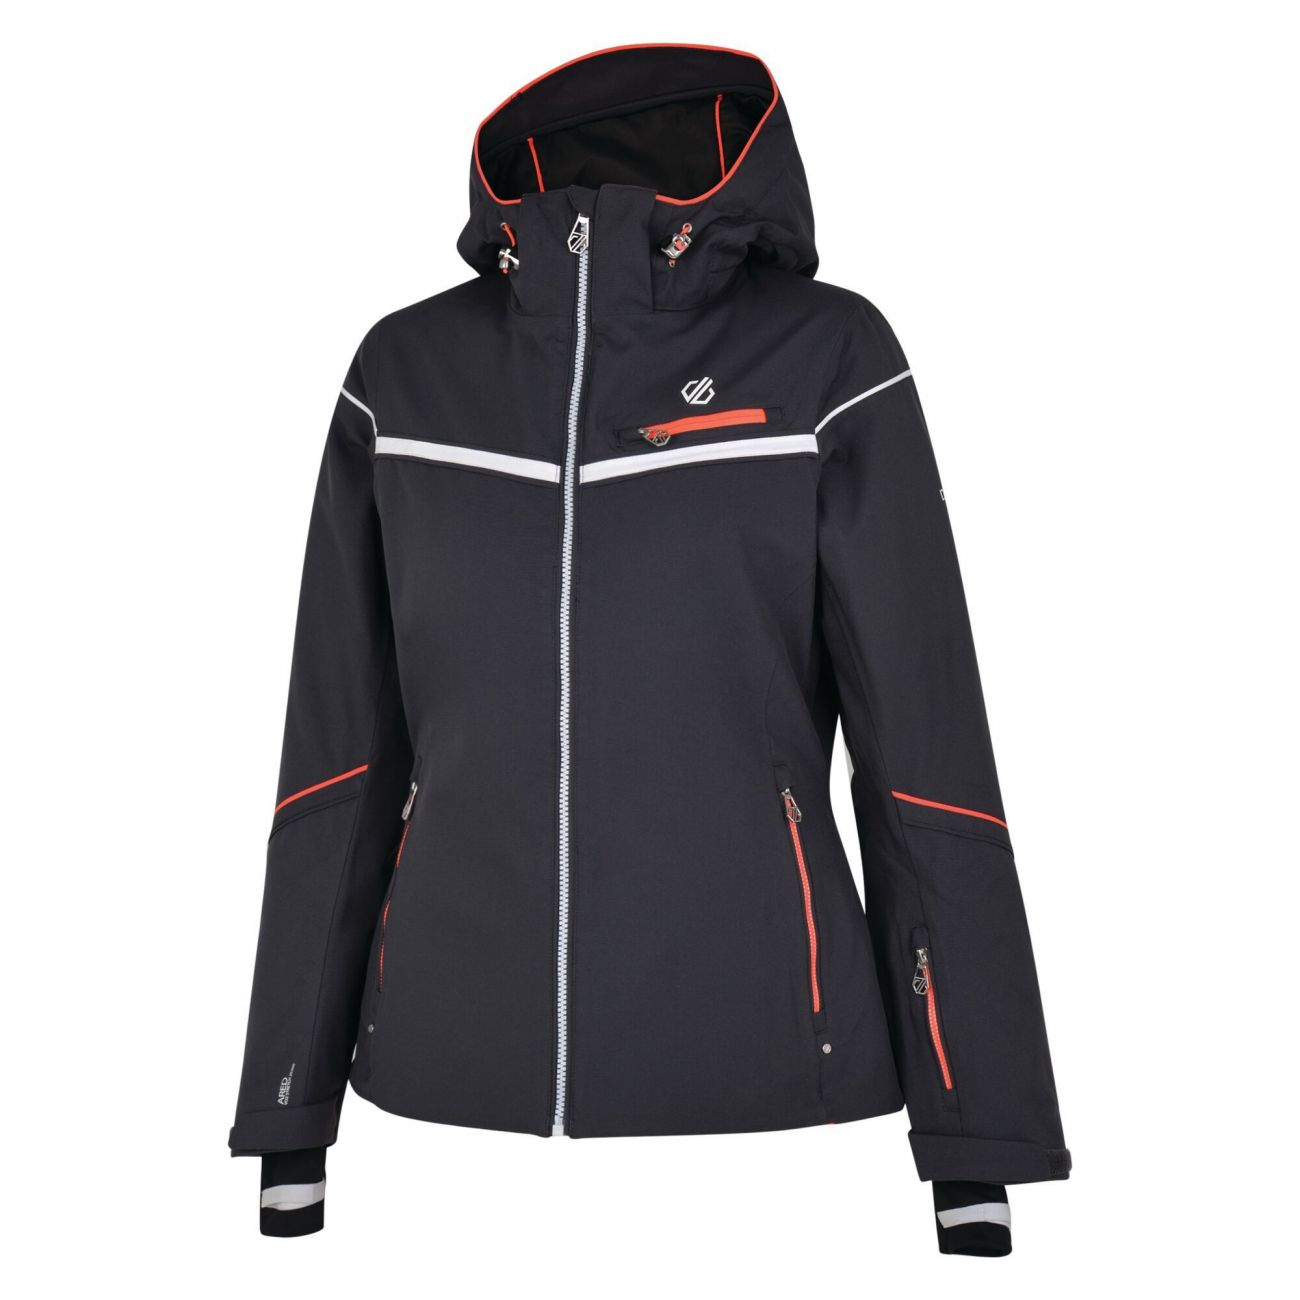 Dare2b Damen Skijacke Icecap Ebony Grey